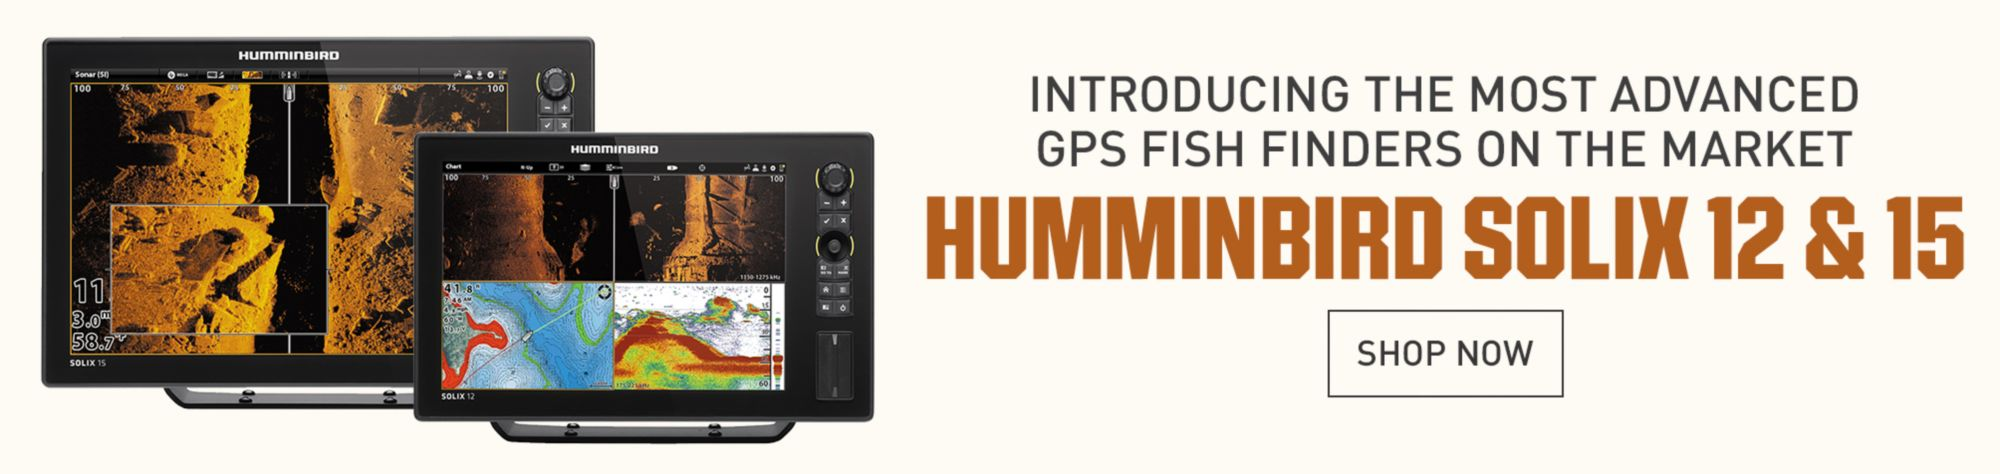 Humminbird Solix Fish Finder